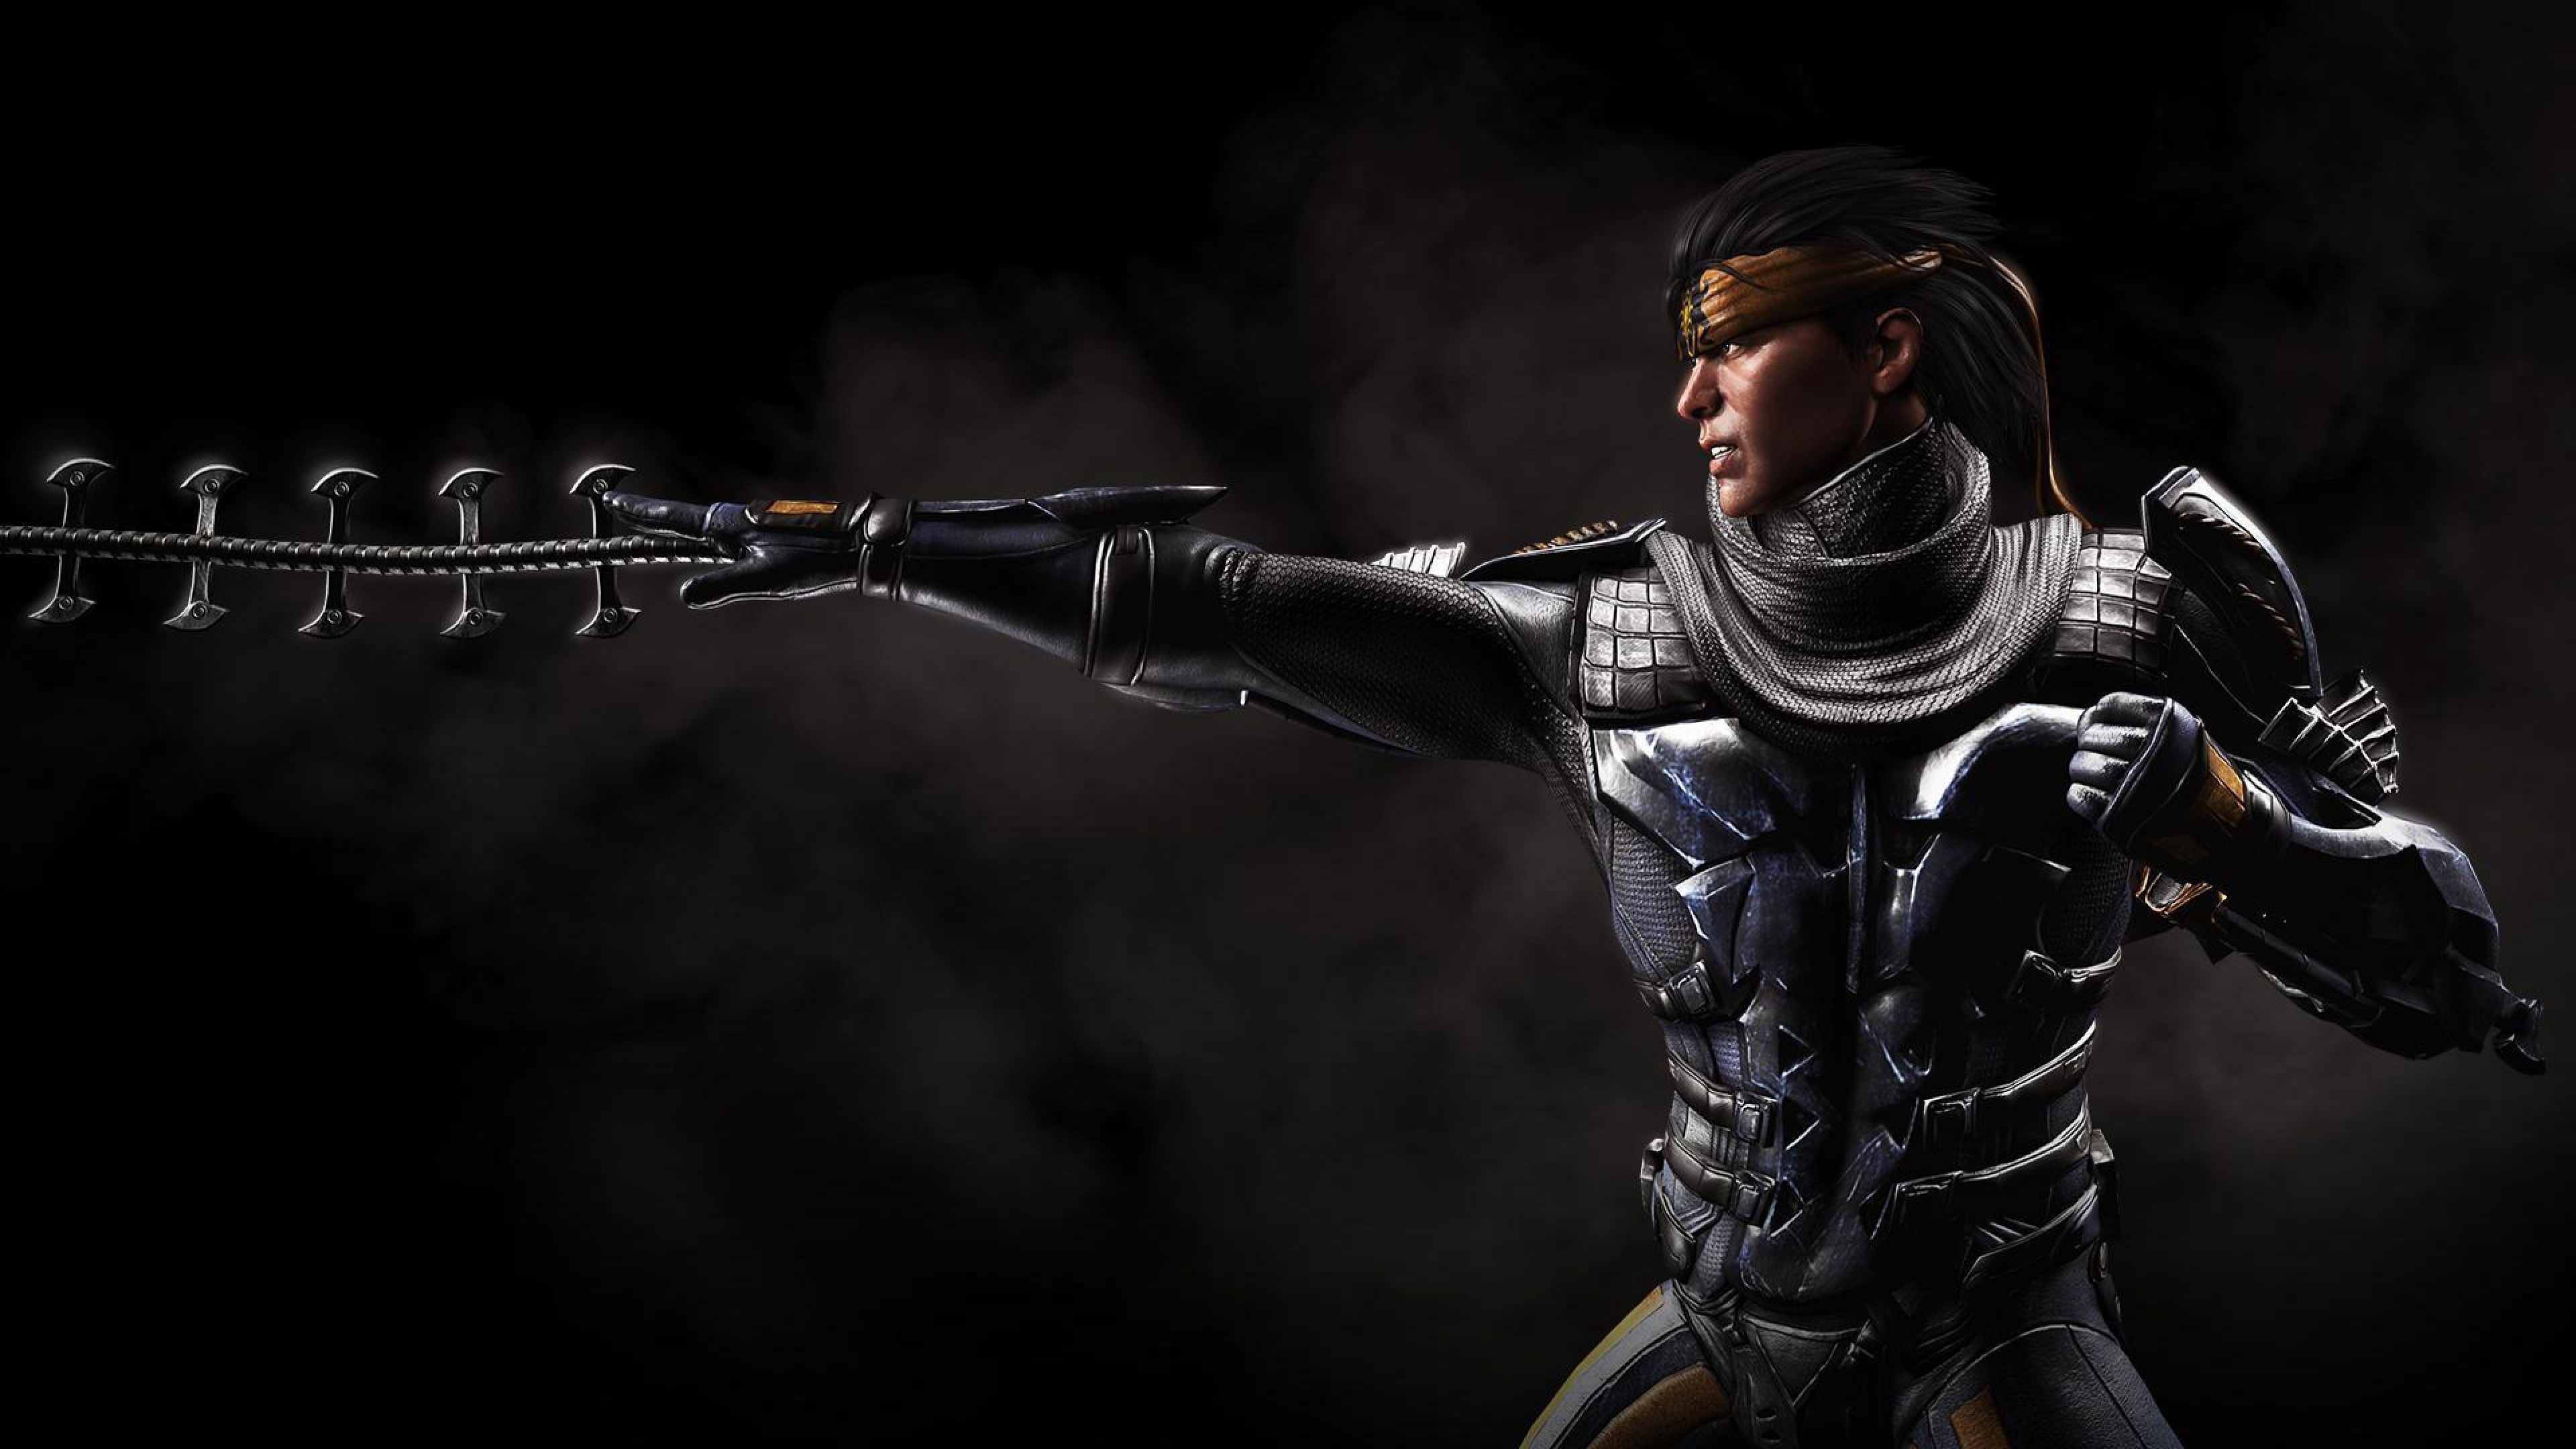 Mortal Kombat X Wallpapers Images Photos Pictures Backgrounds - photo#9